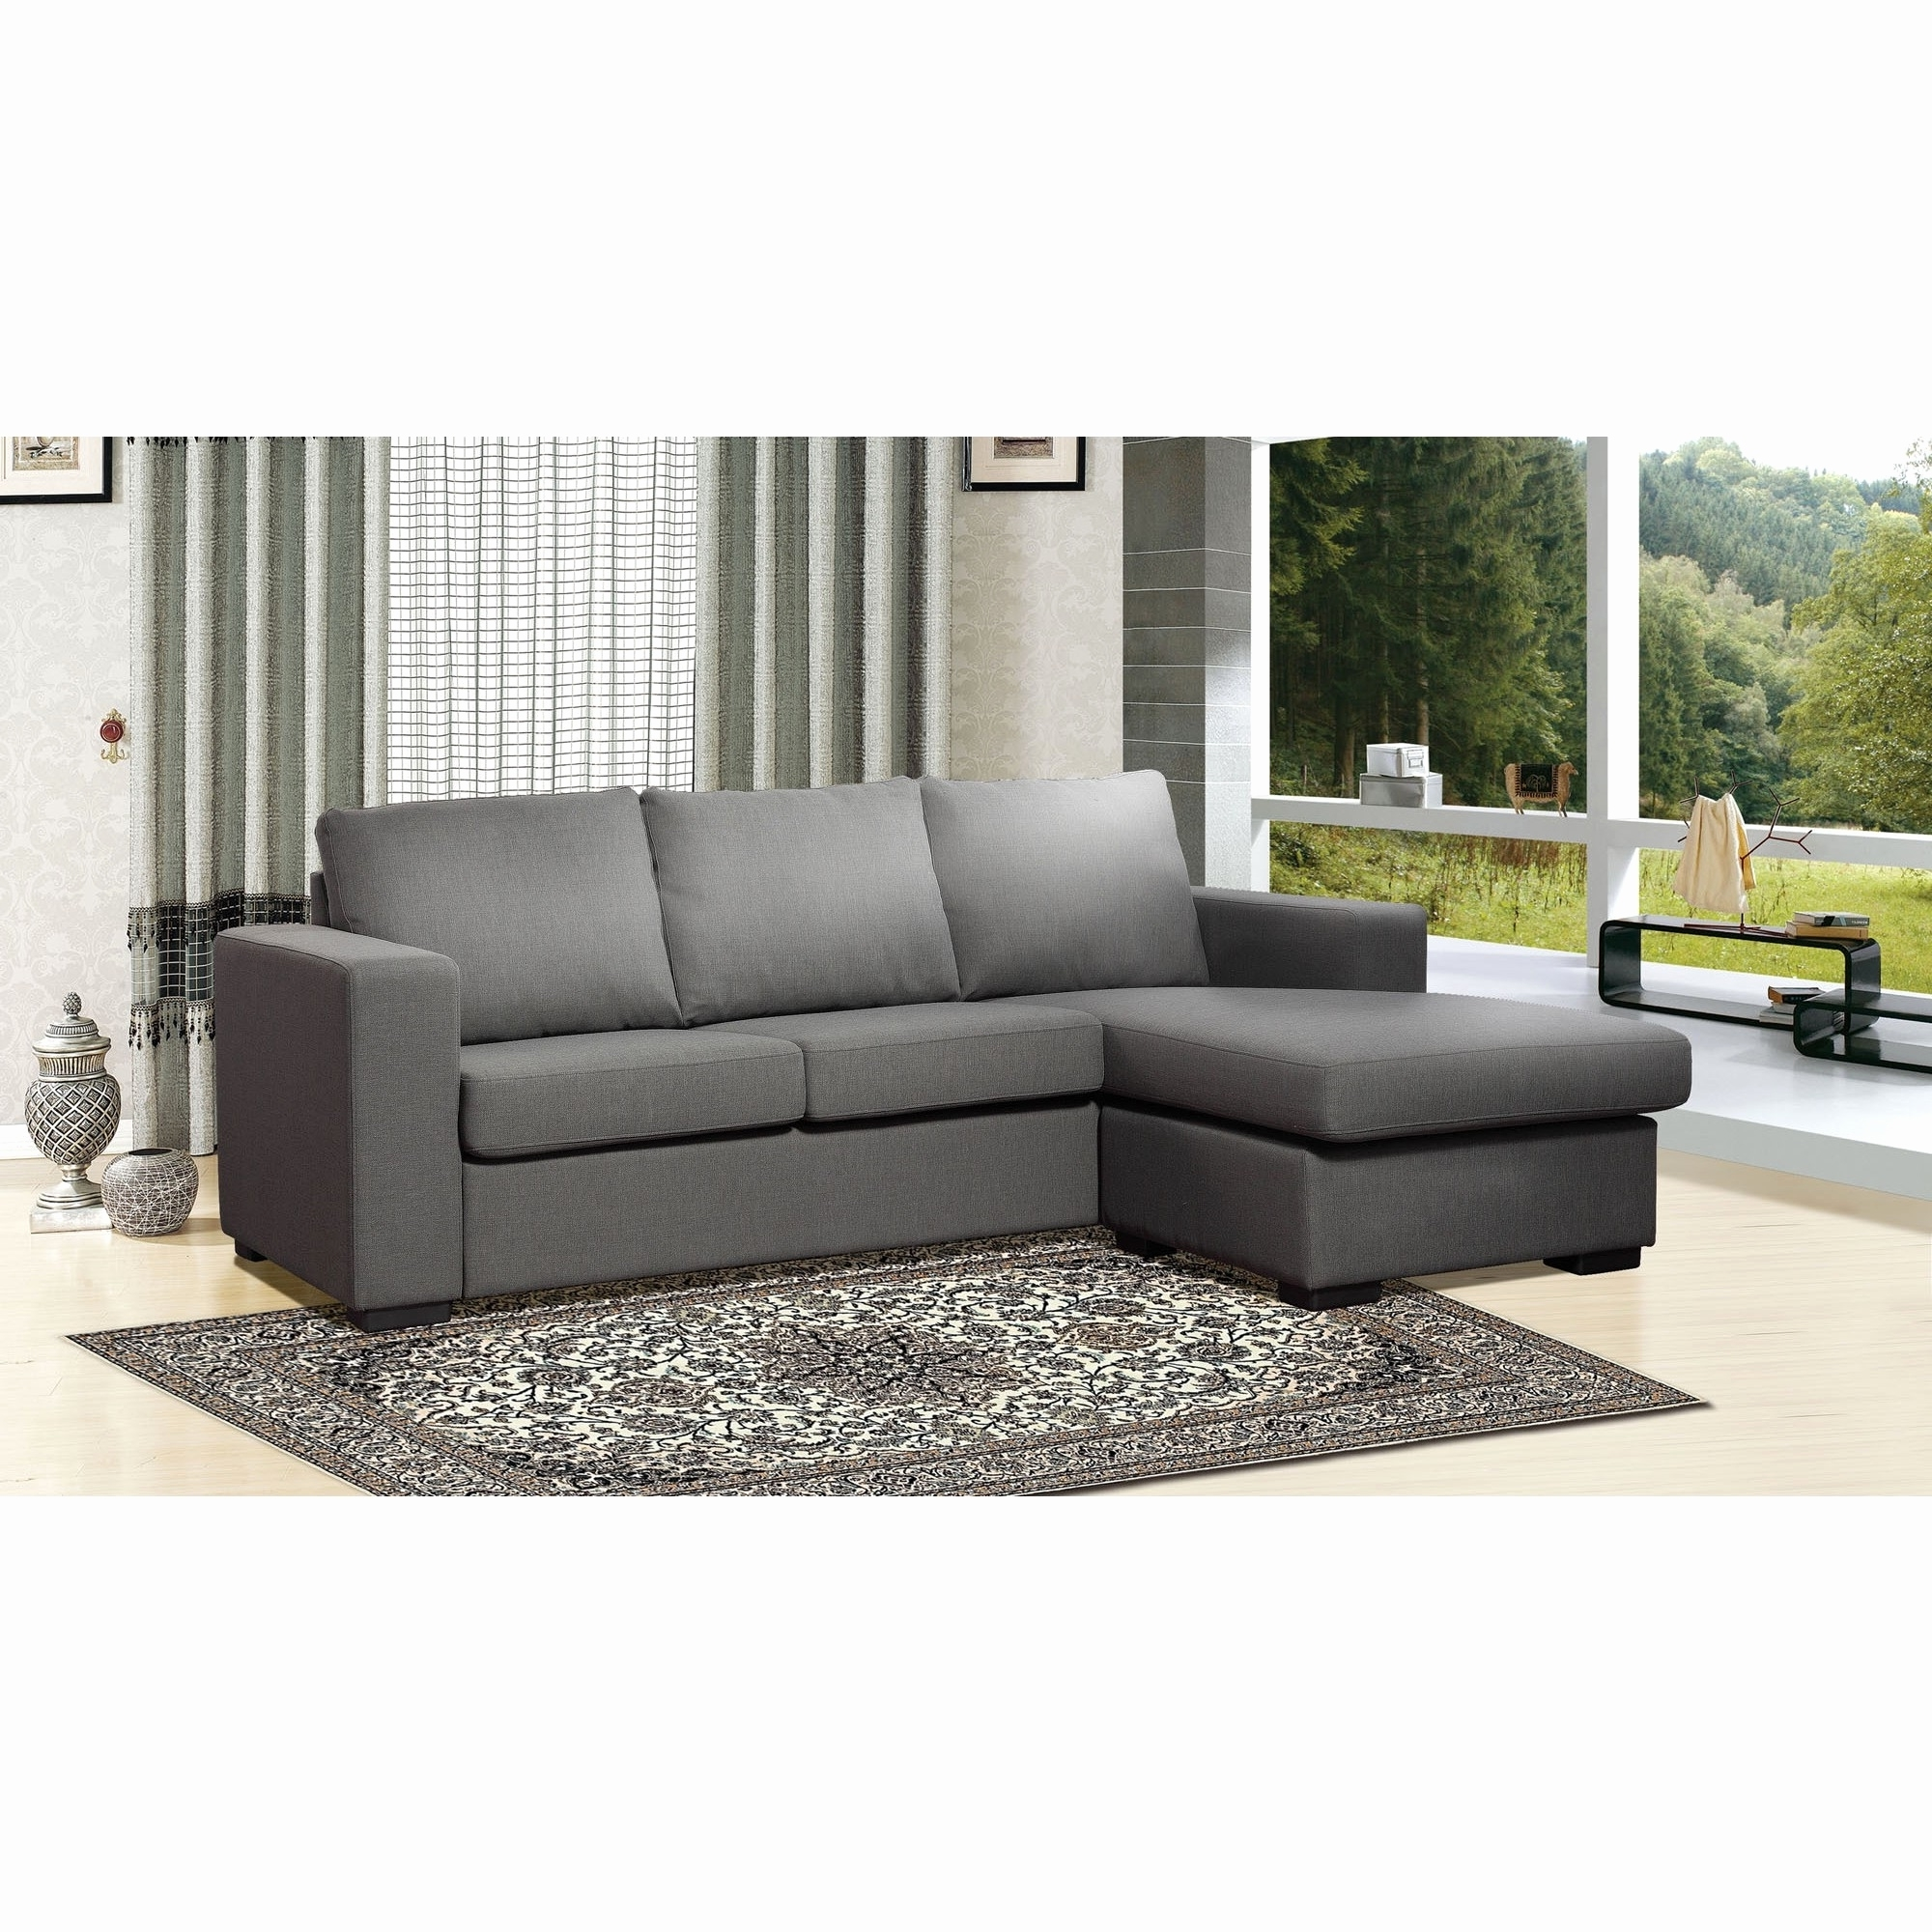 Grey Sectional Sofas With Chaise Regarding Fashionable Unique Gray Sectional Sofa With Chaise 2018 – Couches Ideas (View 7 of 15)